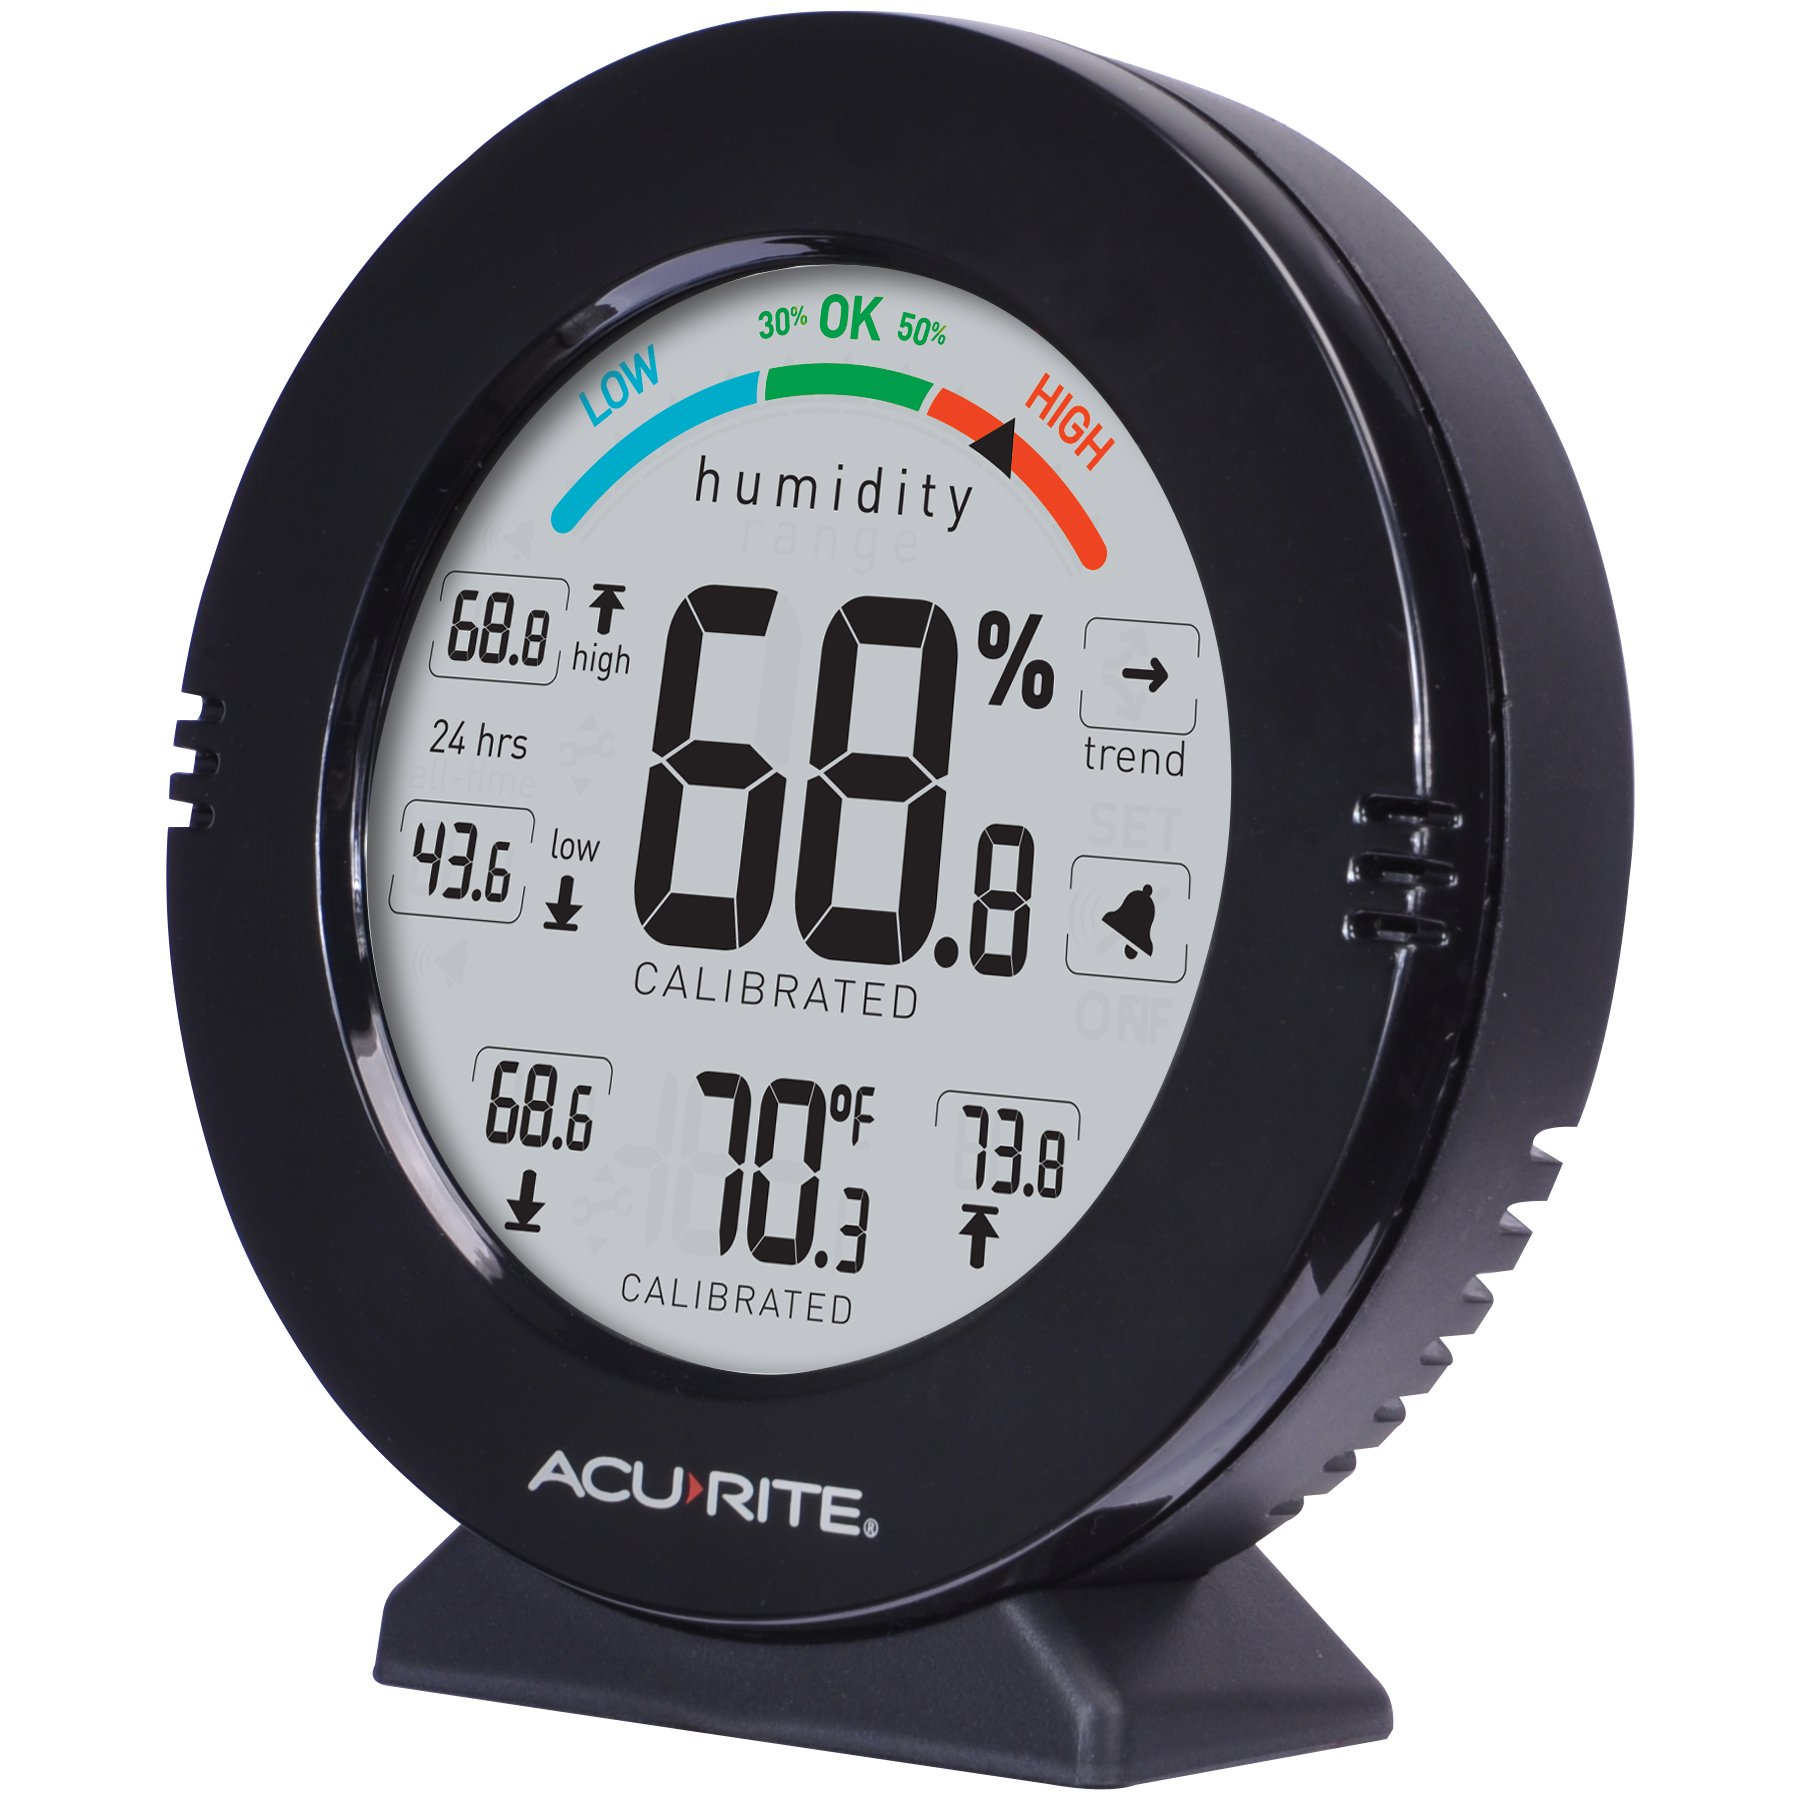 AcuRite 01080 Pro Accuracy Indoor Temperature and Humidity Monitor with Alarms by AcuRite (Image #1)